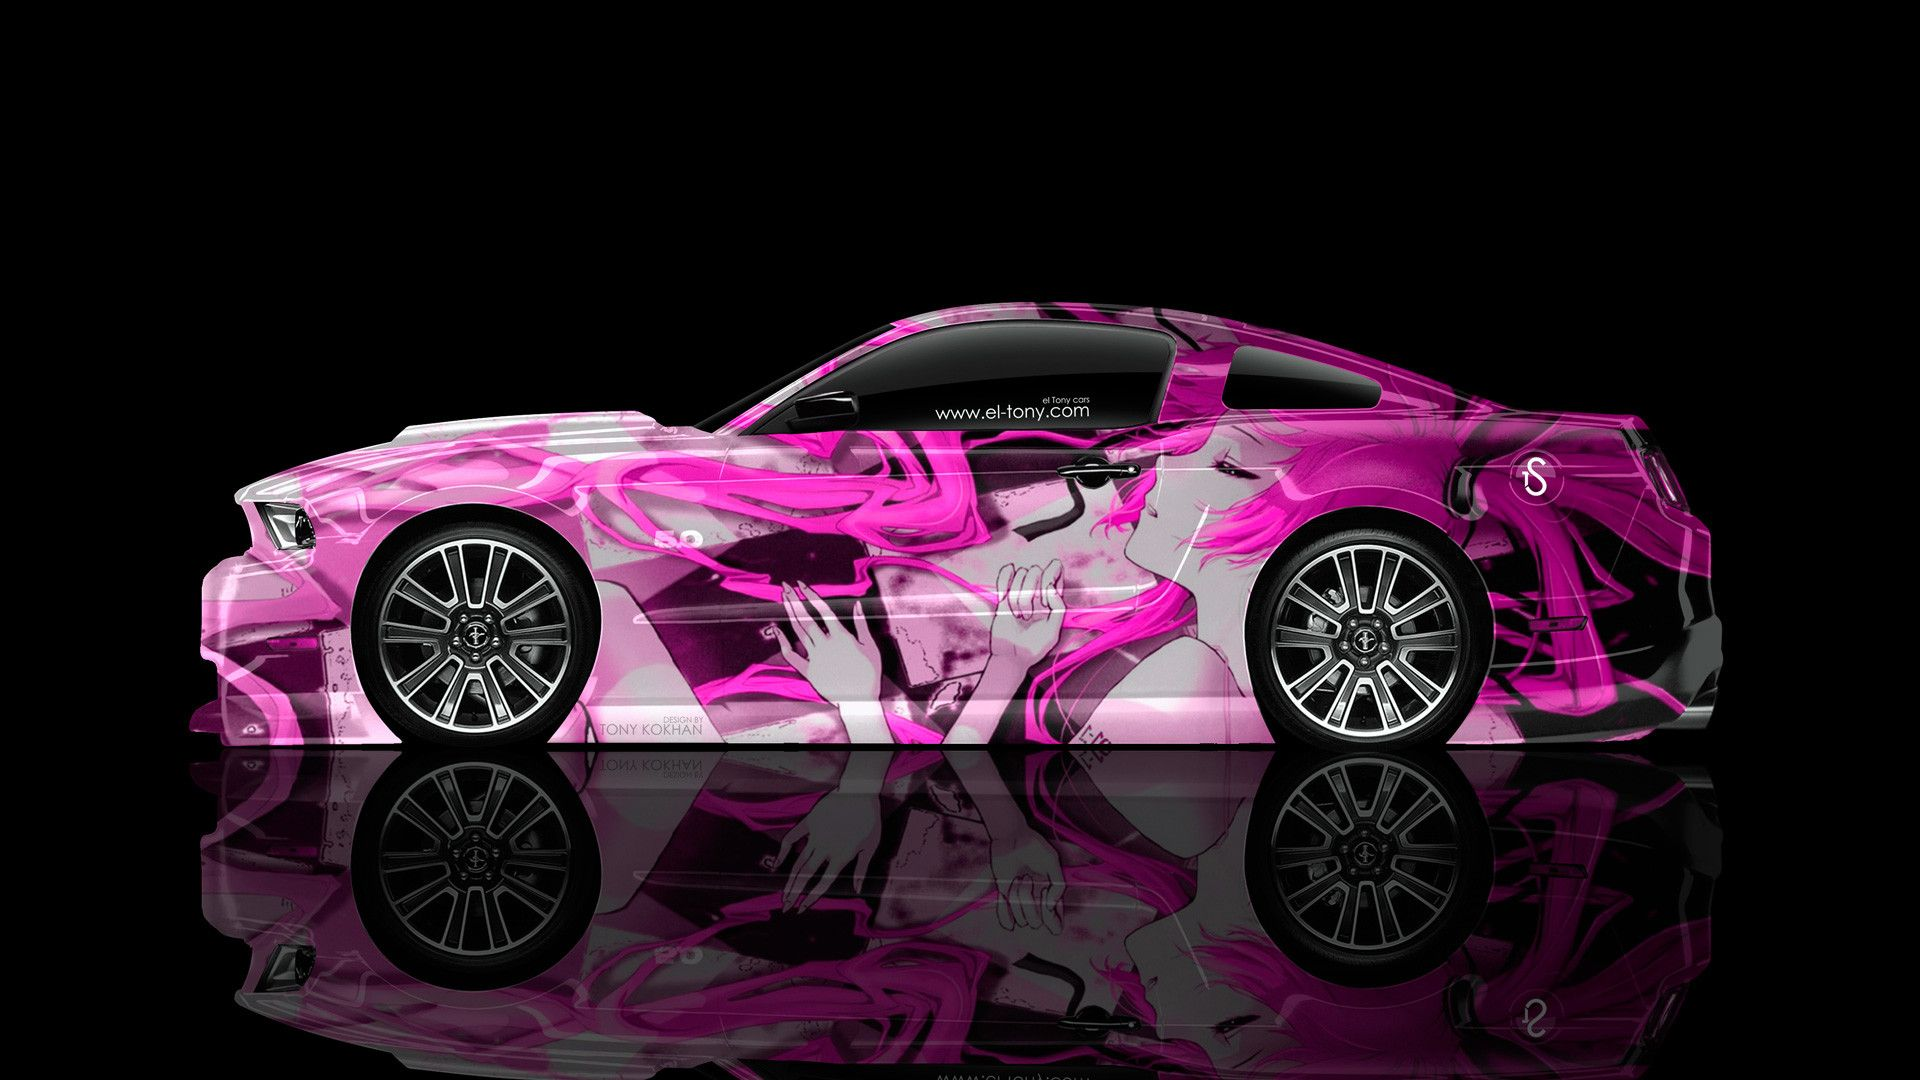 1920x1080 Pink And Black Mustang Wallpaper 23 Cool Wallpaper